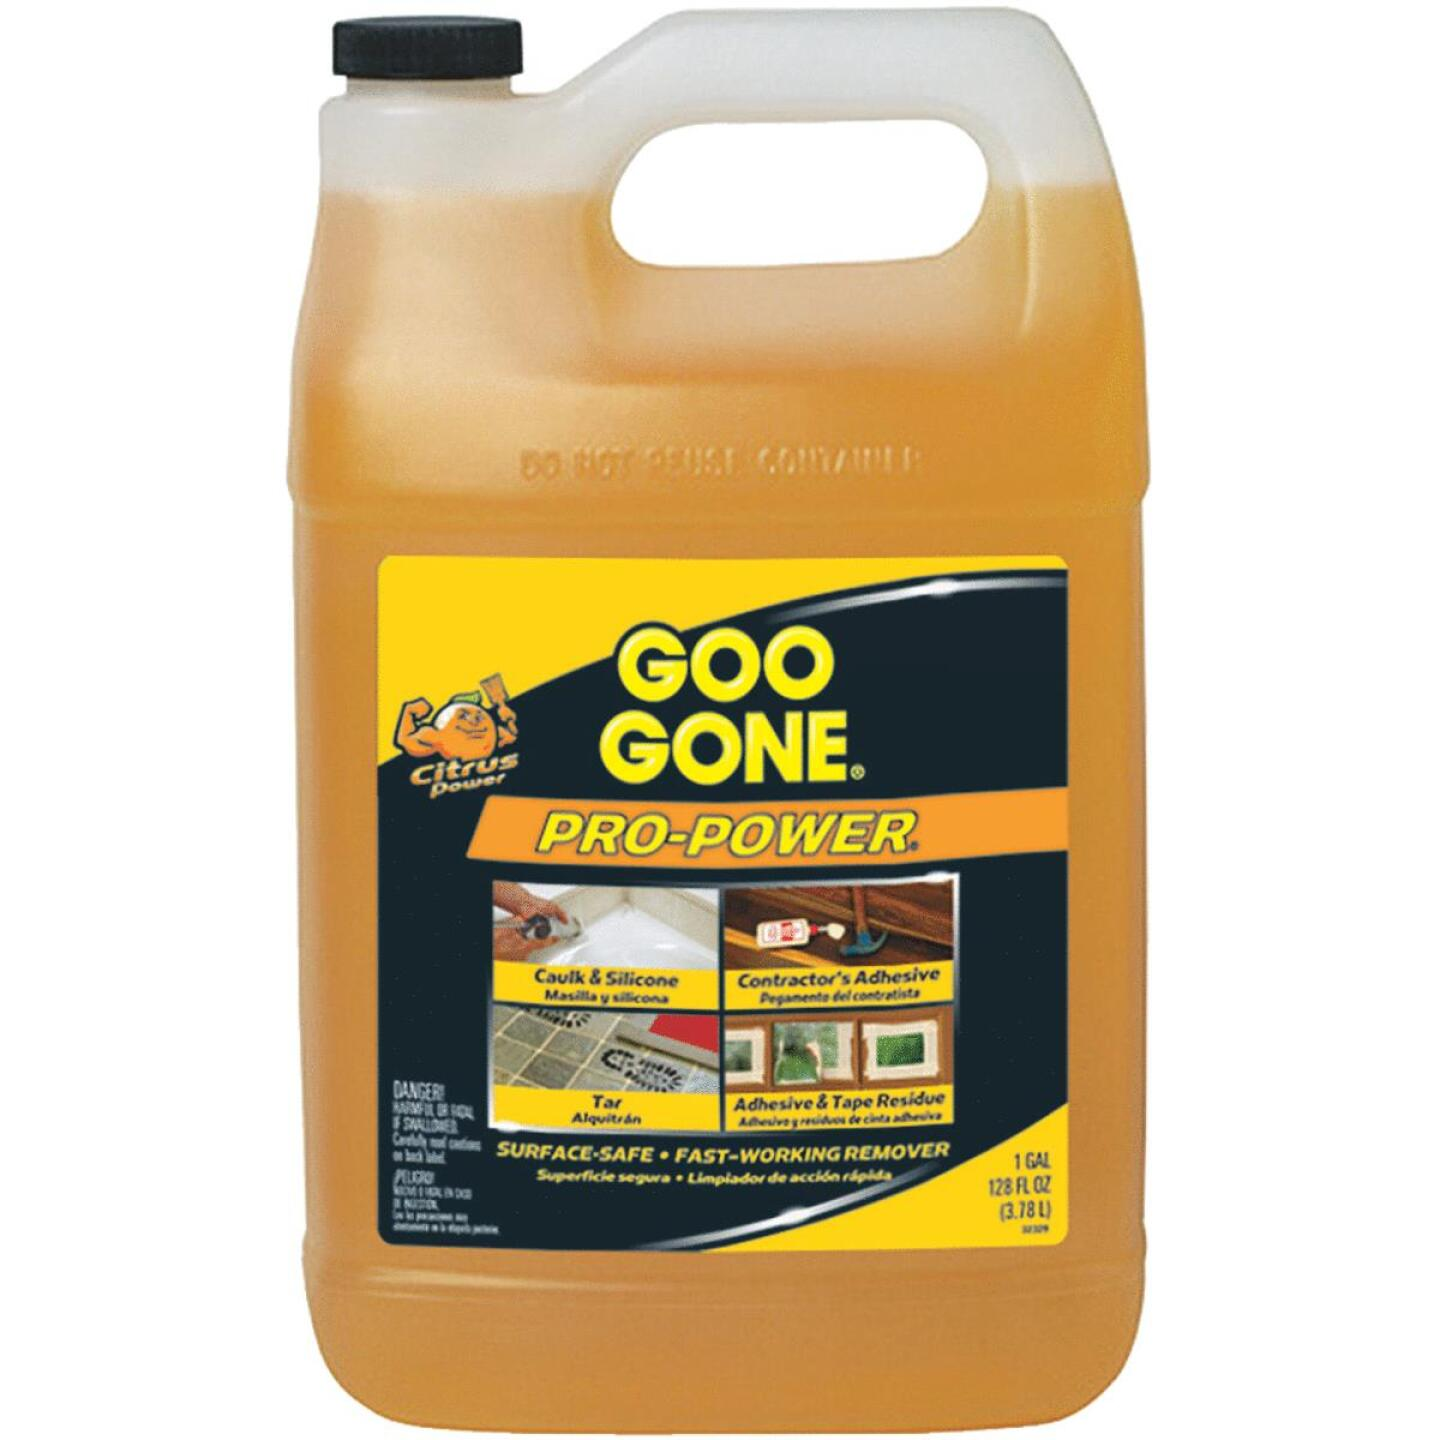 Goo Gone 1 Gal. Pro-Power Adhesive Remover Image 143